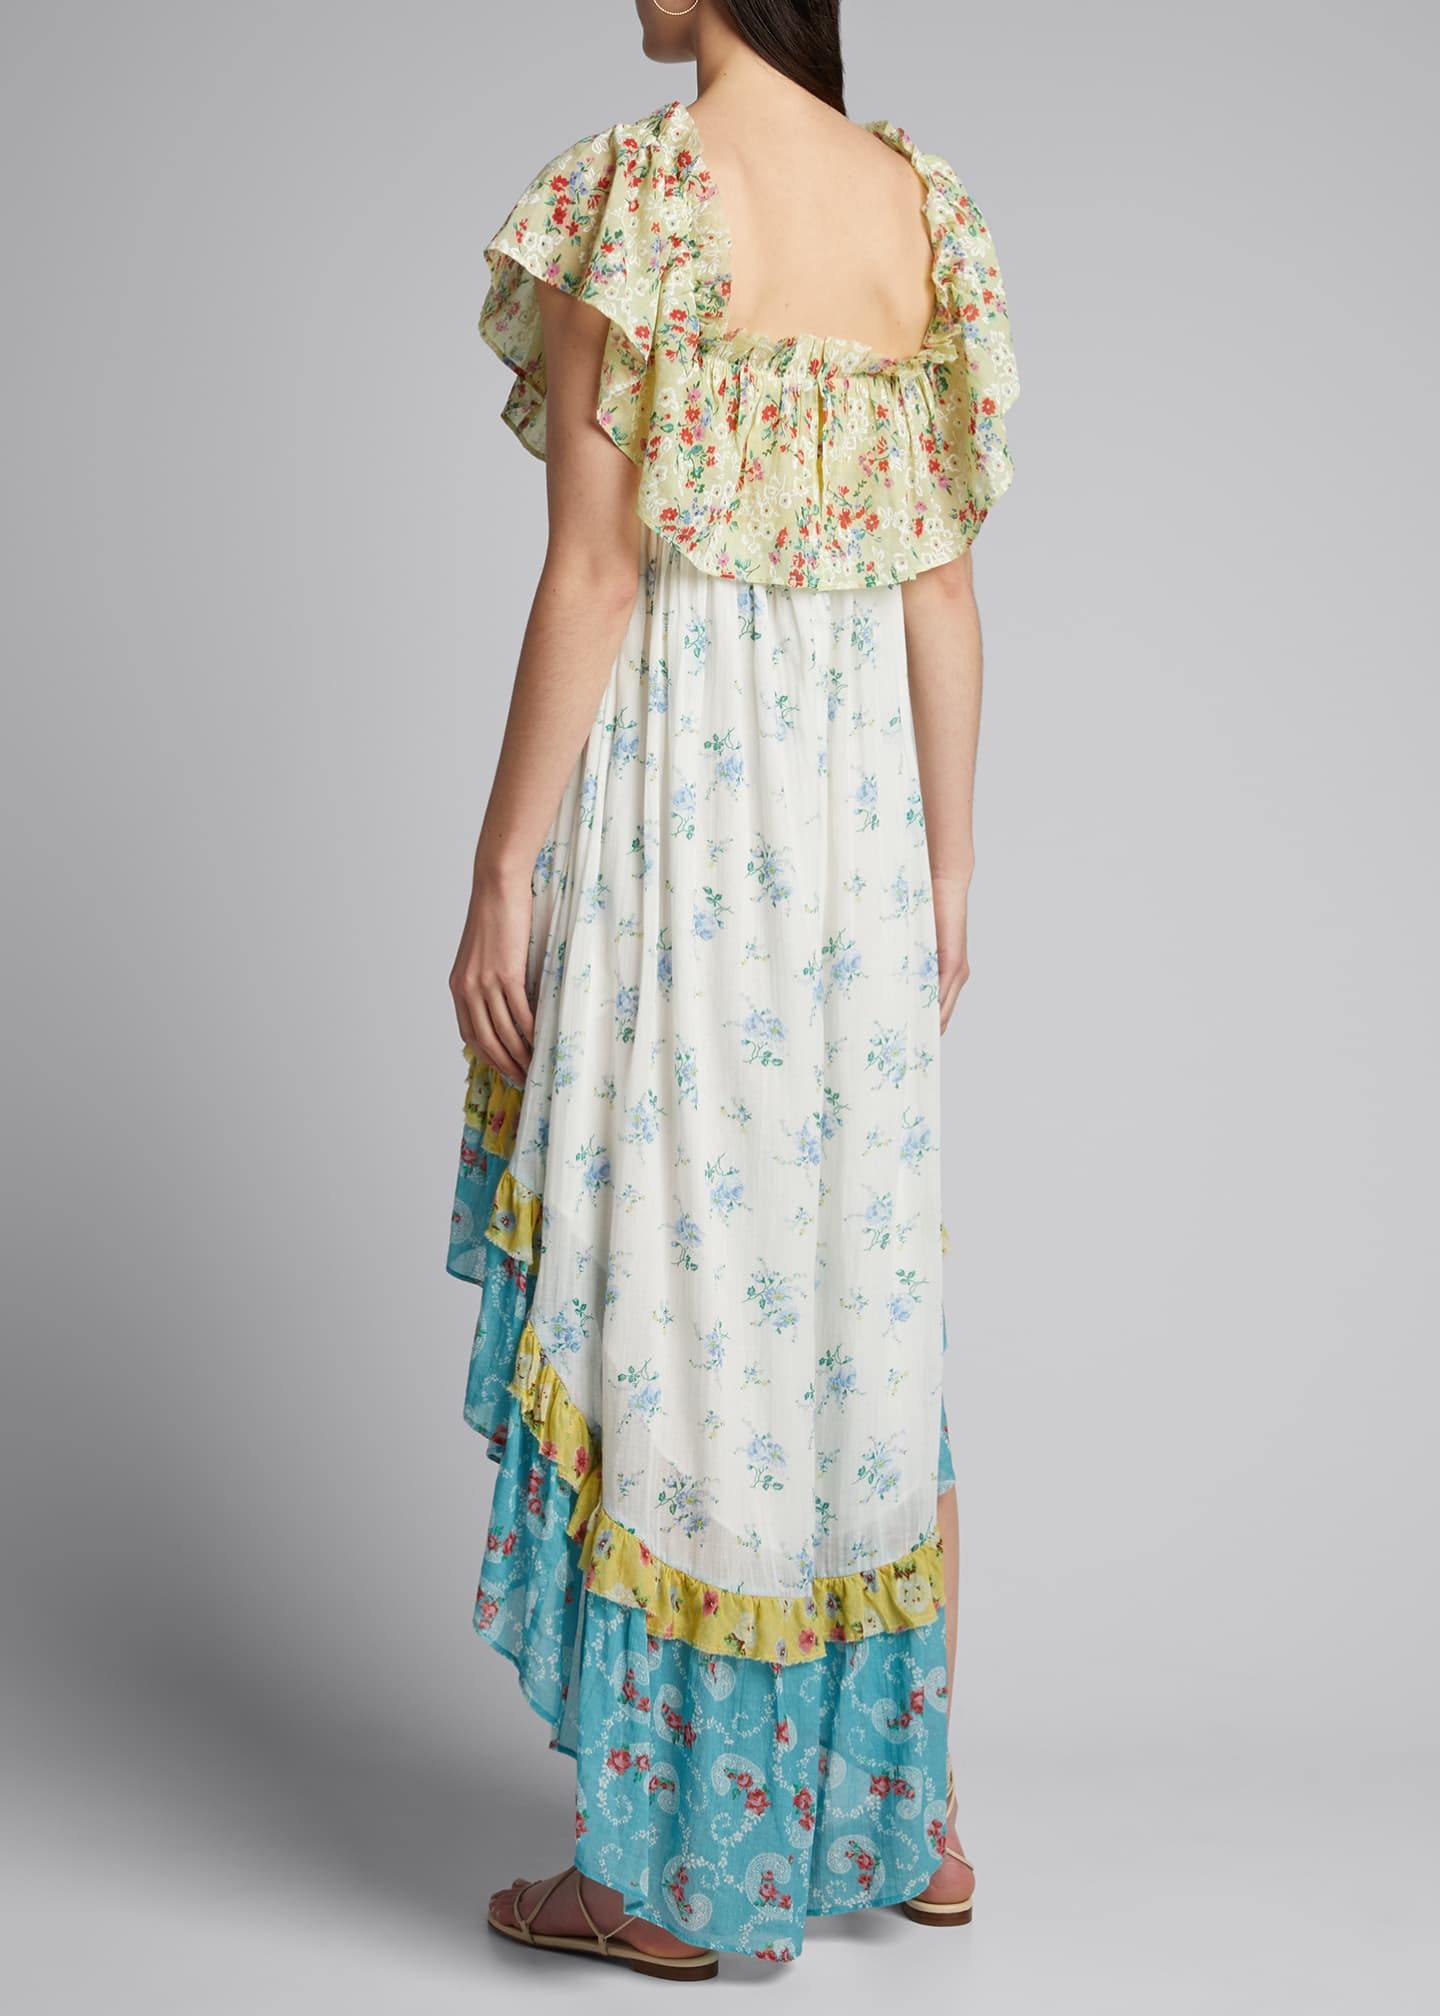 Image 2 of 5: Alexia Floral High-Low Ruffle Dress